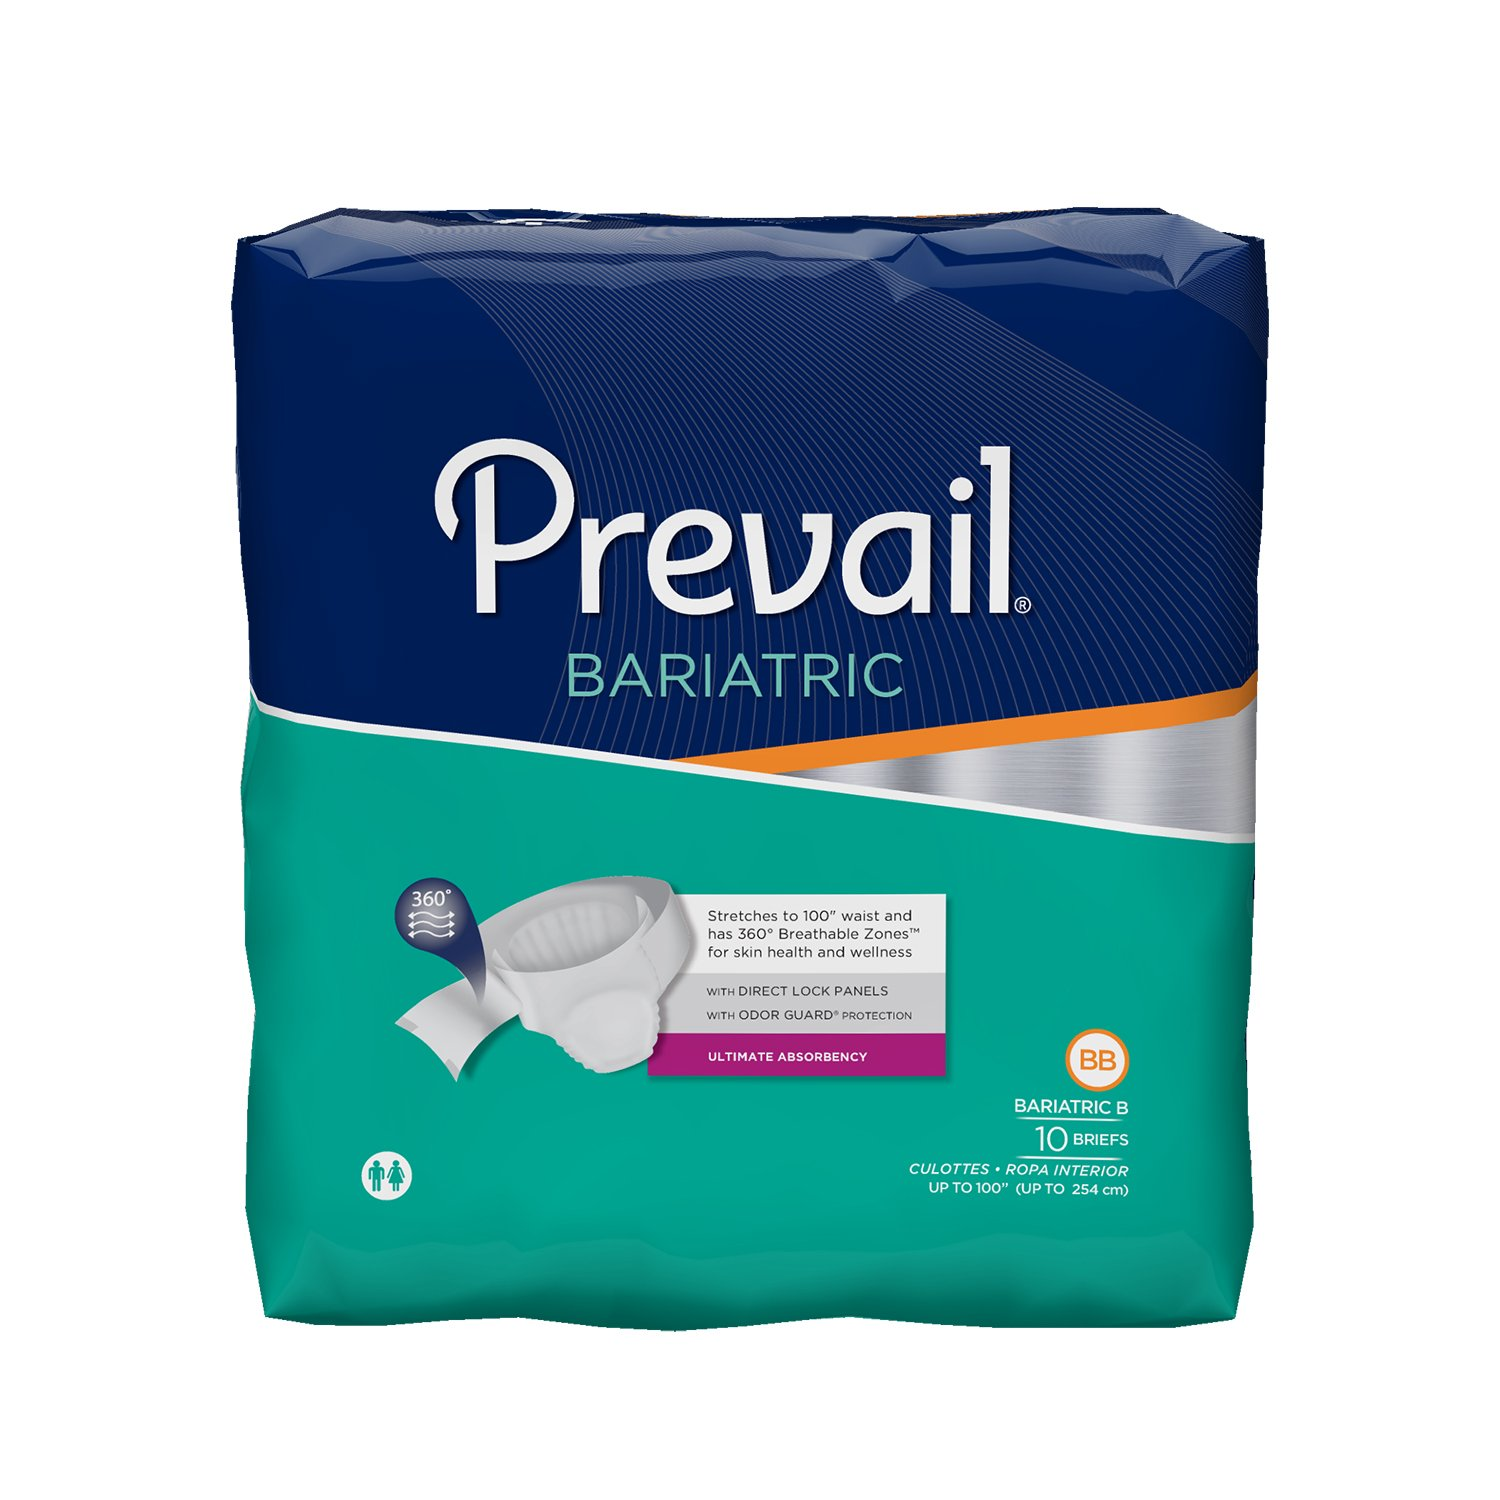 Prevail Bariatric Ultimate Absorbency Briefs, Size B, 10-Count